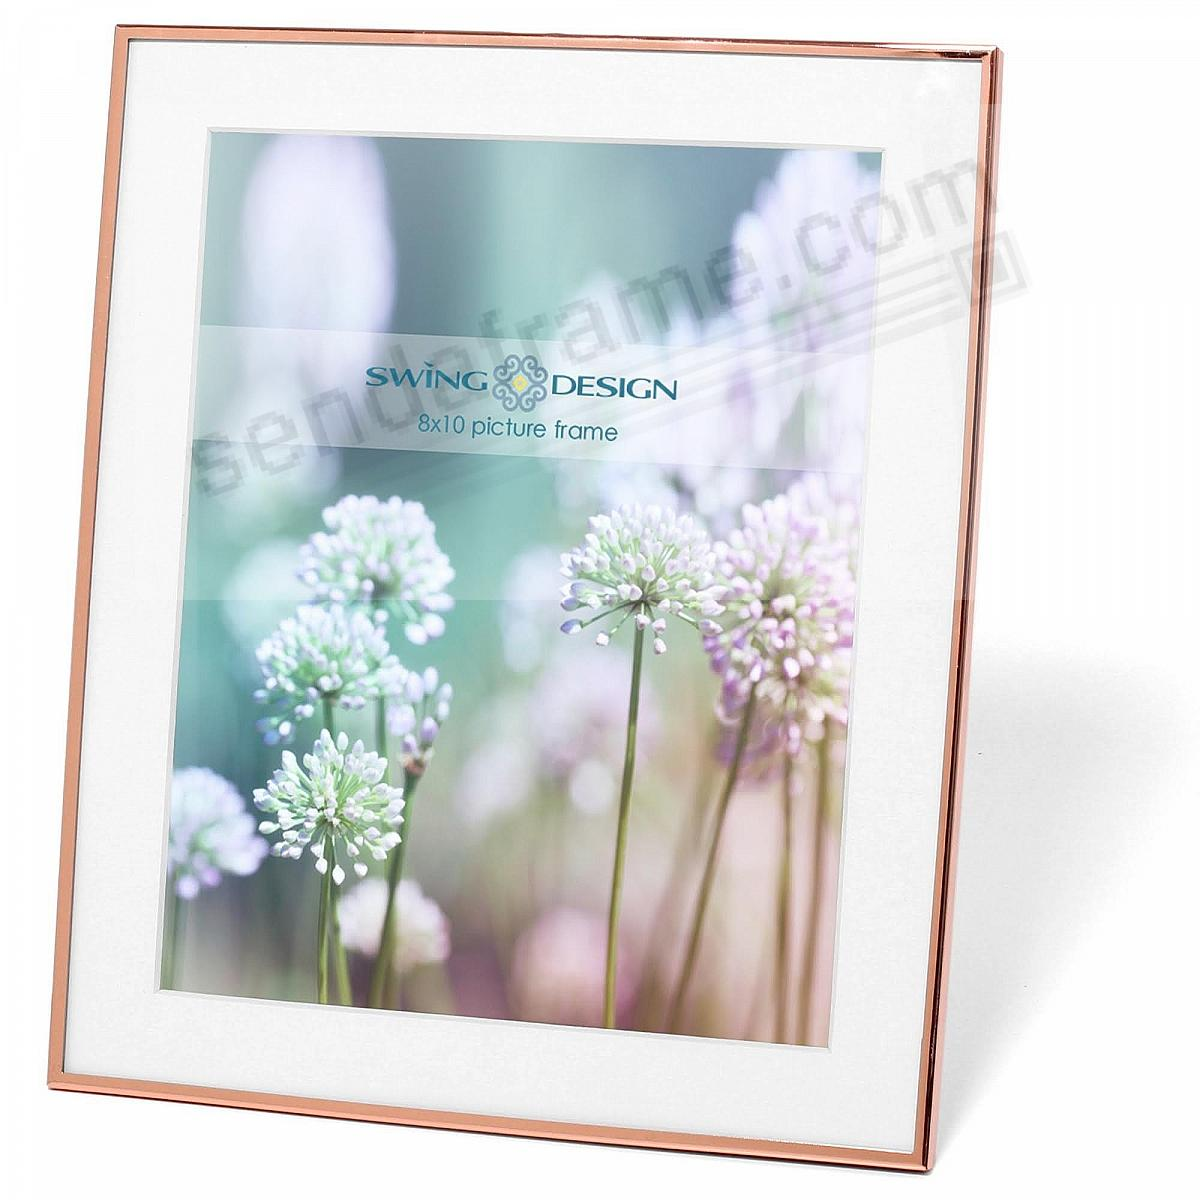 8x10 picture frames gold the original essex rose gold 8x10 frame by swing design